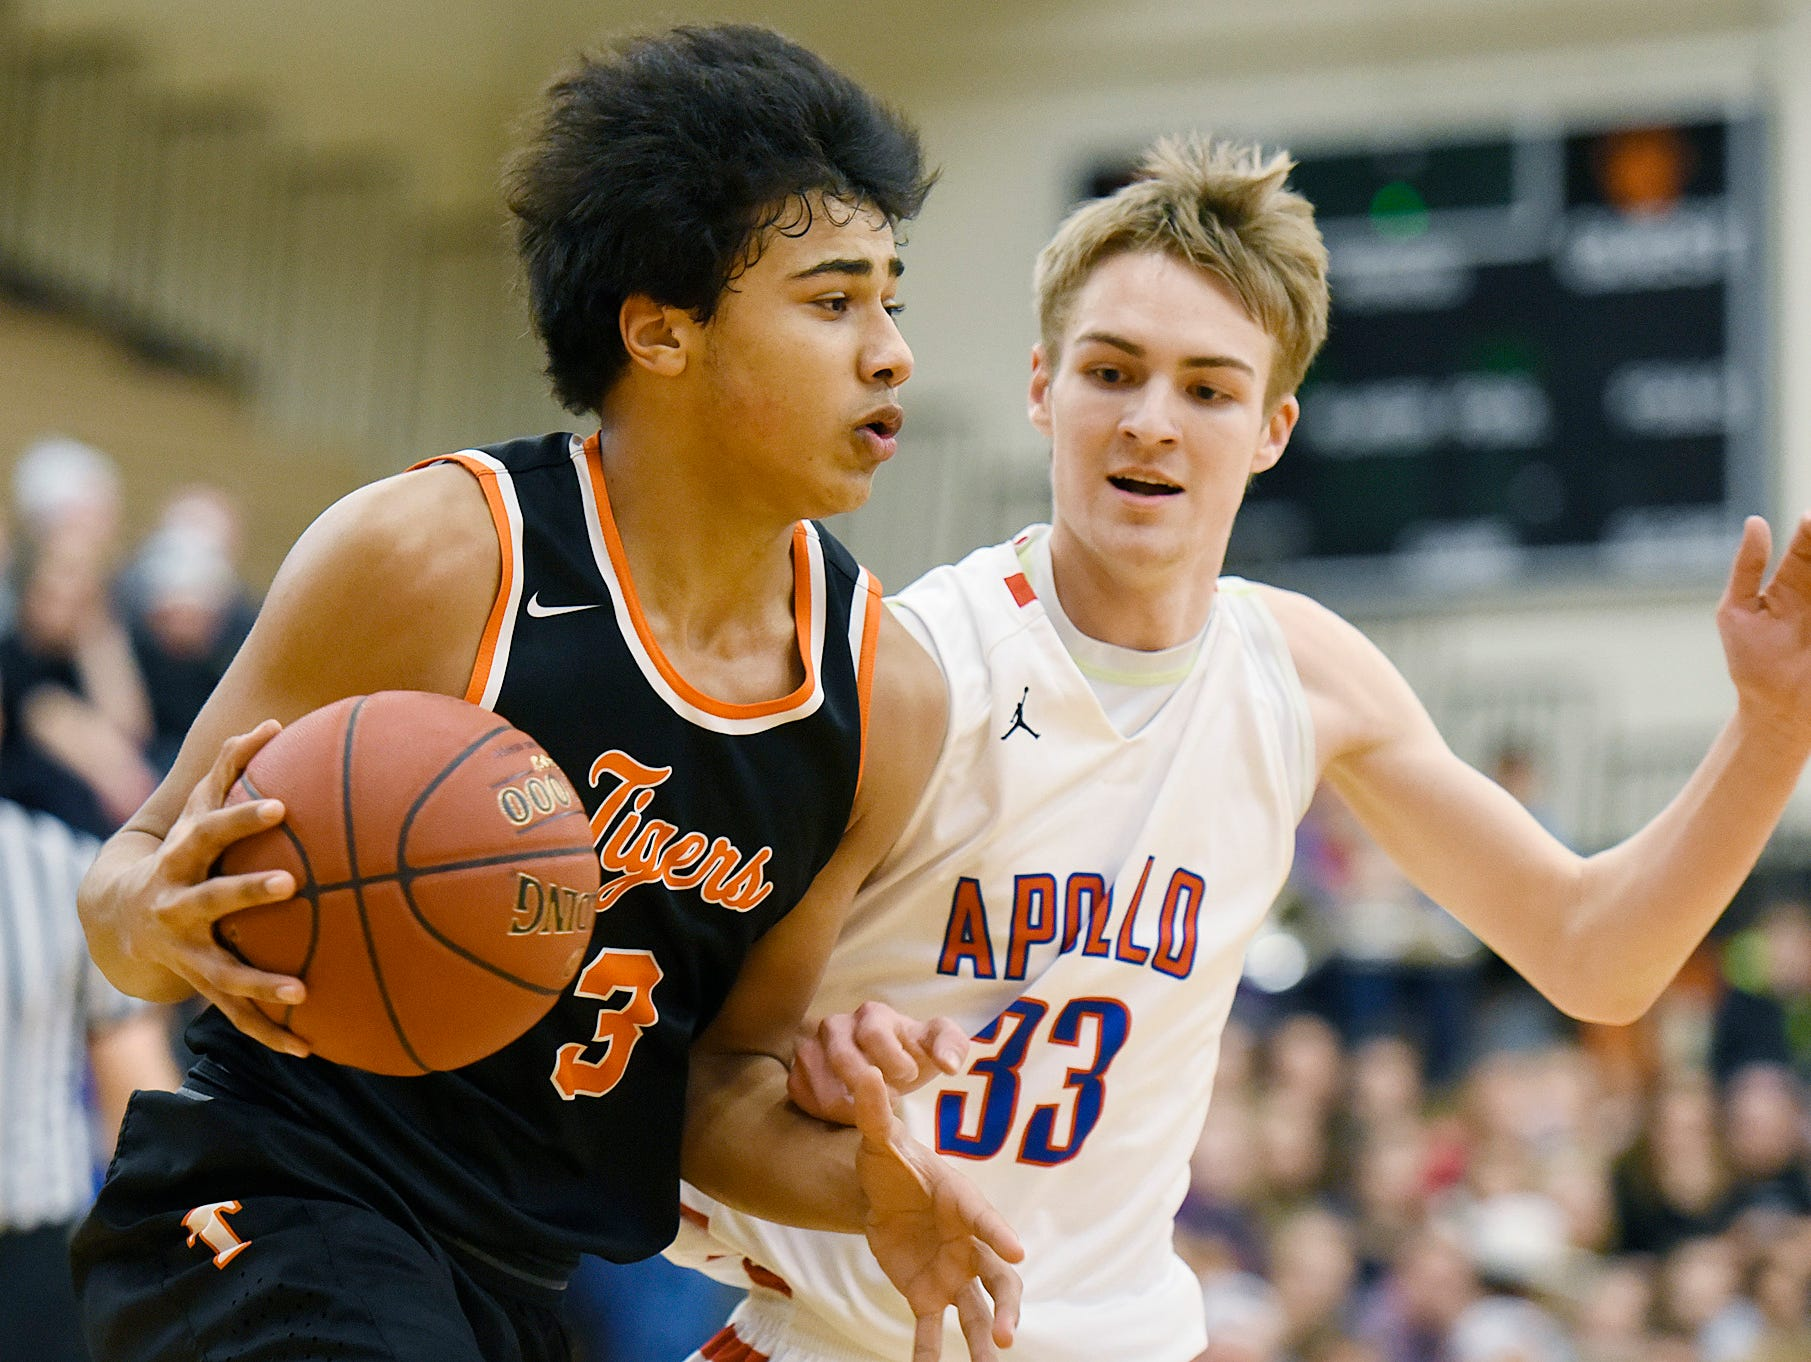 Tech's Brevyn Spann-Ford takes the ball past Apollo's Ben Giese as he drives toward the basket during the first half Tuesday Dec. 8 at Apollo High School.